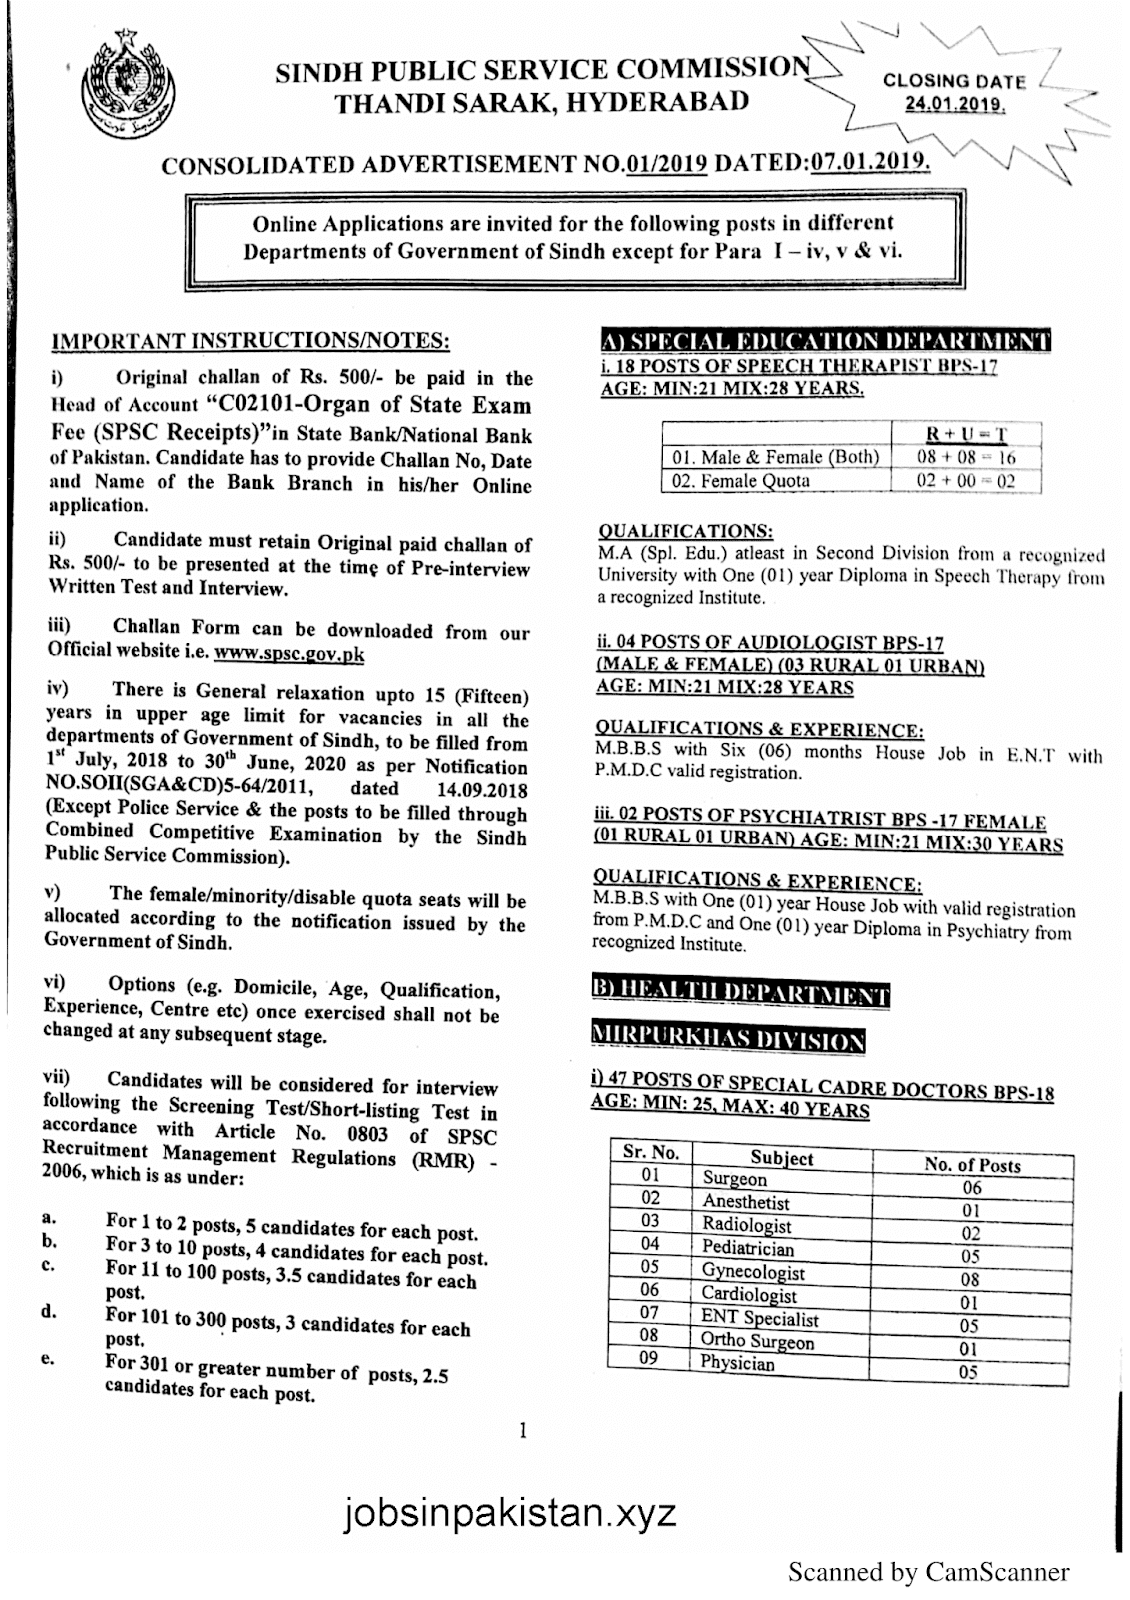 SPSC Advertisement 01/2019 Page No. 1/6